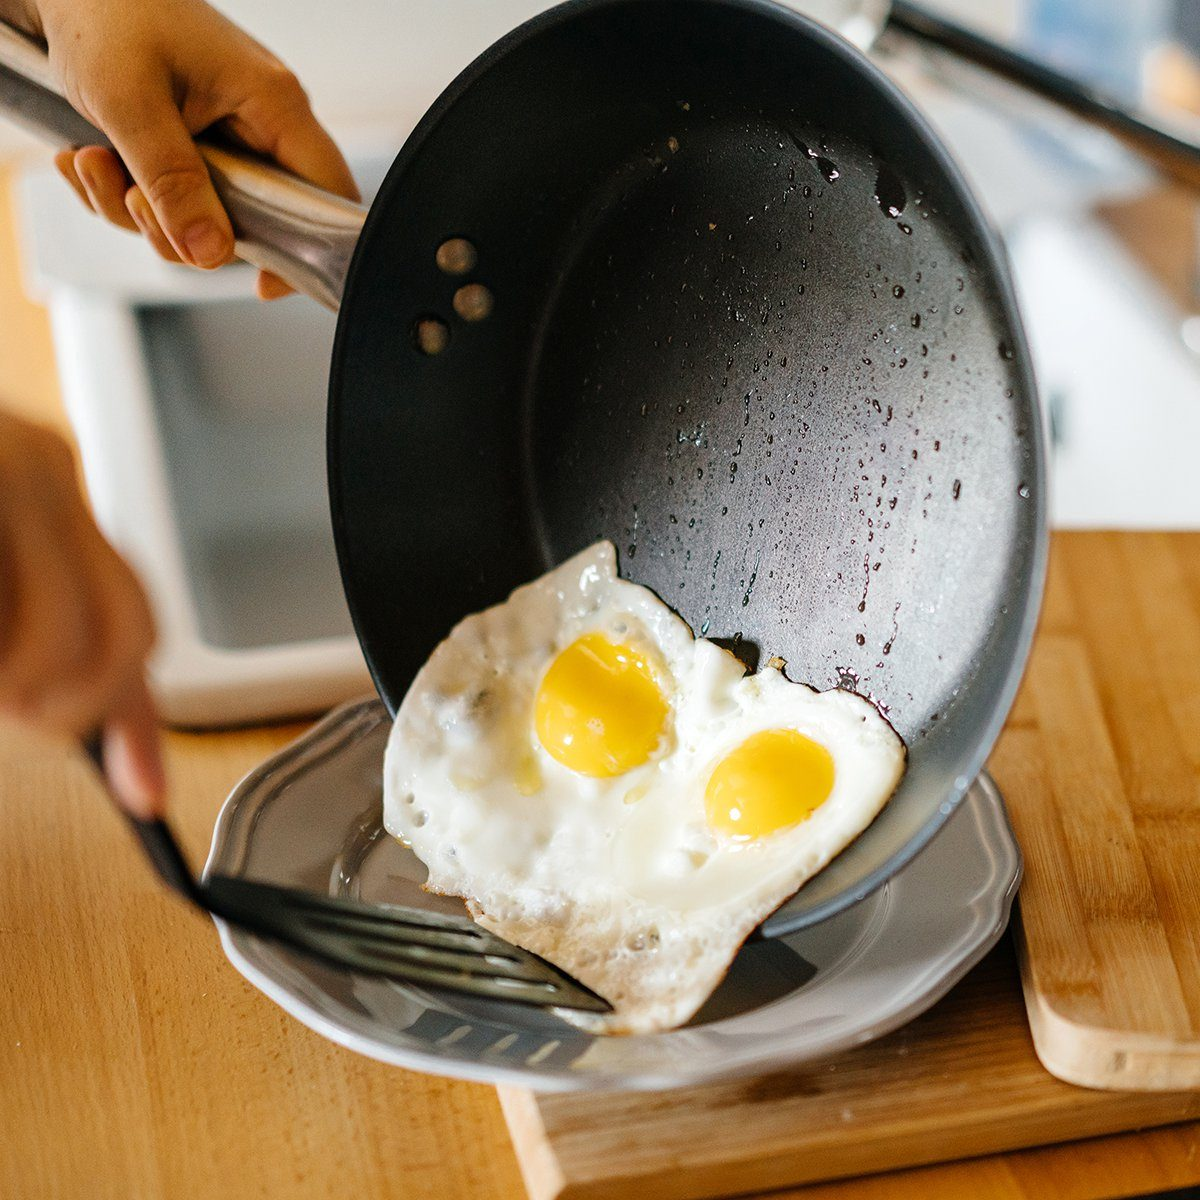 Two fried eggs in a pan with olive oil.